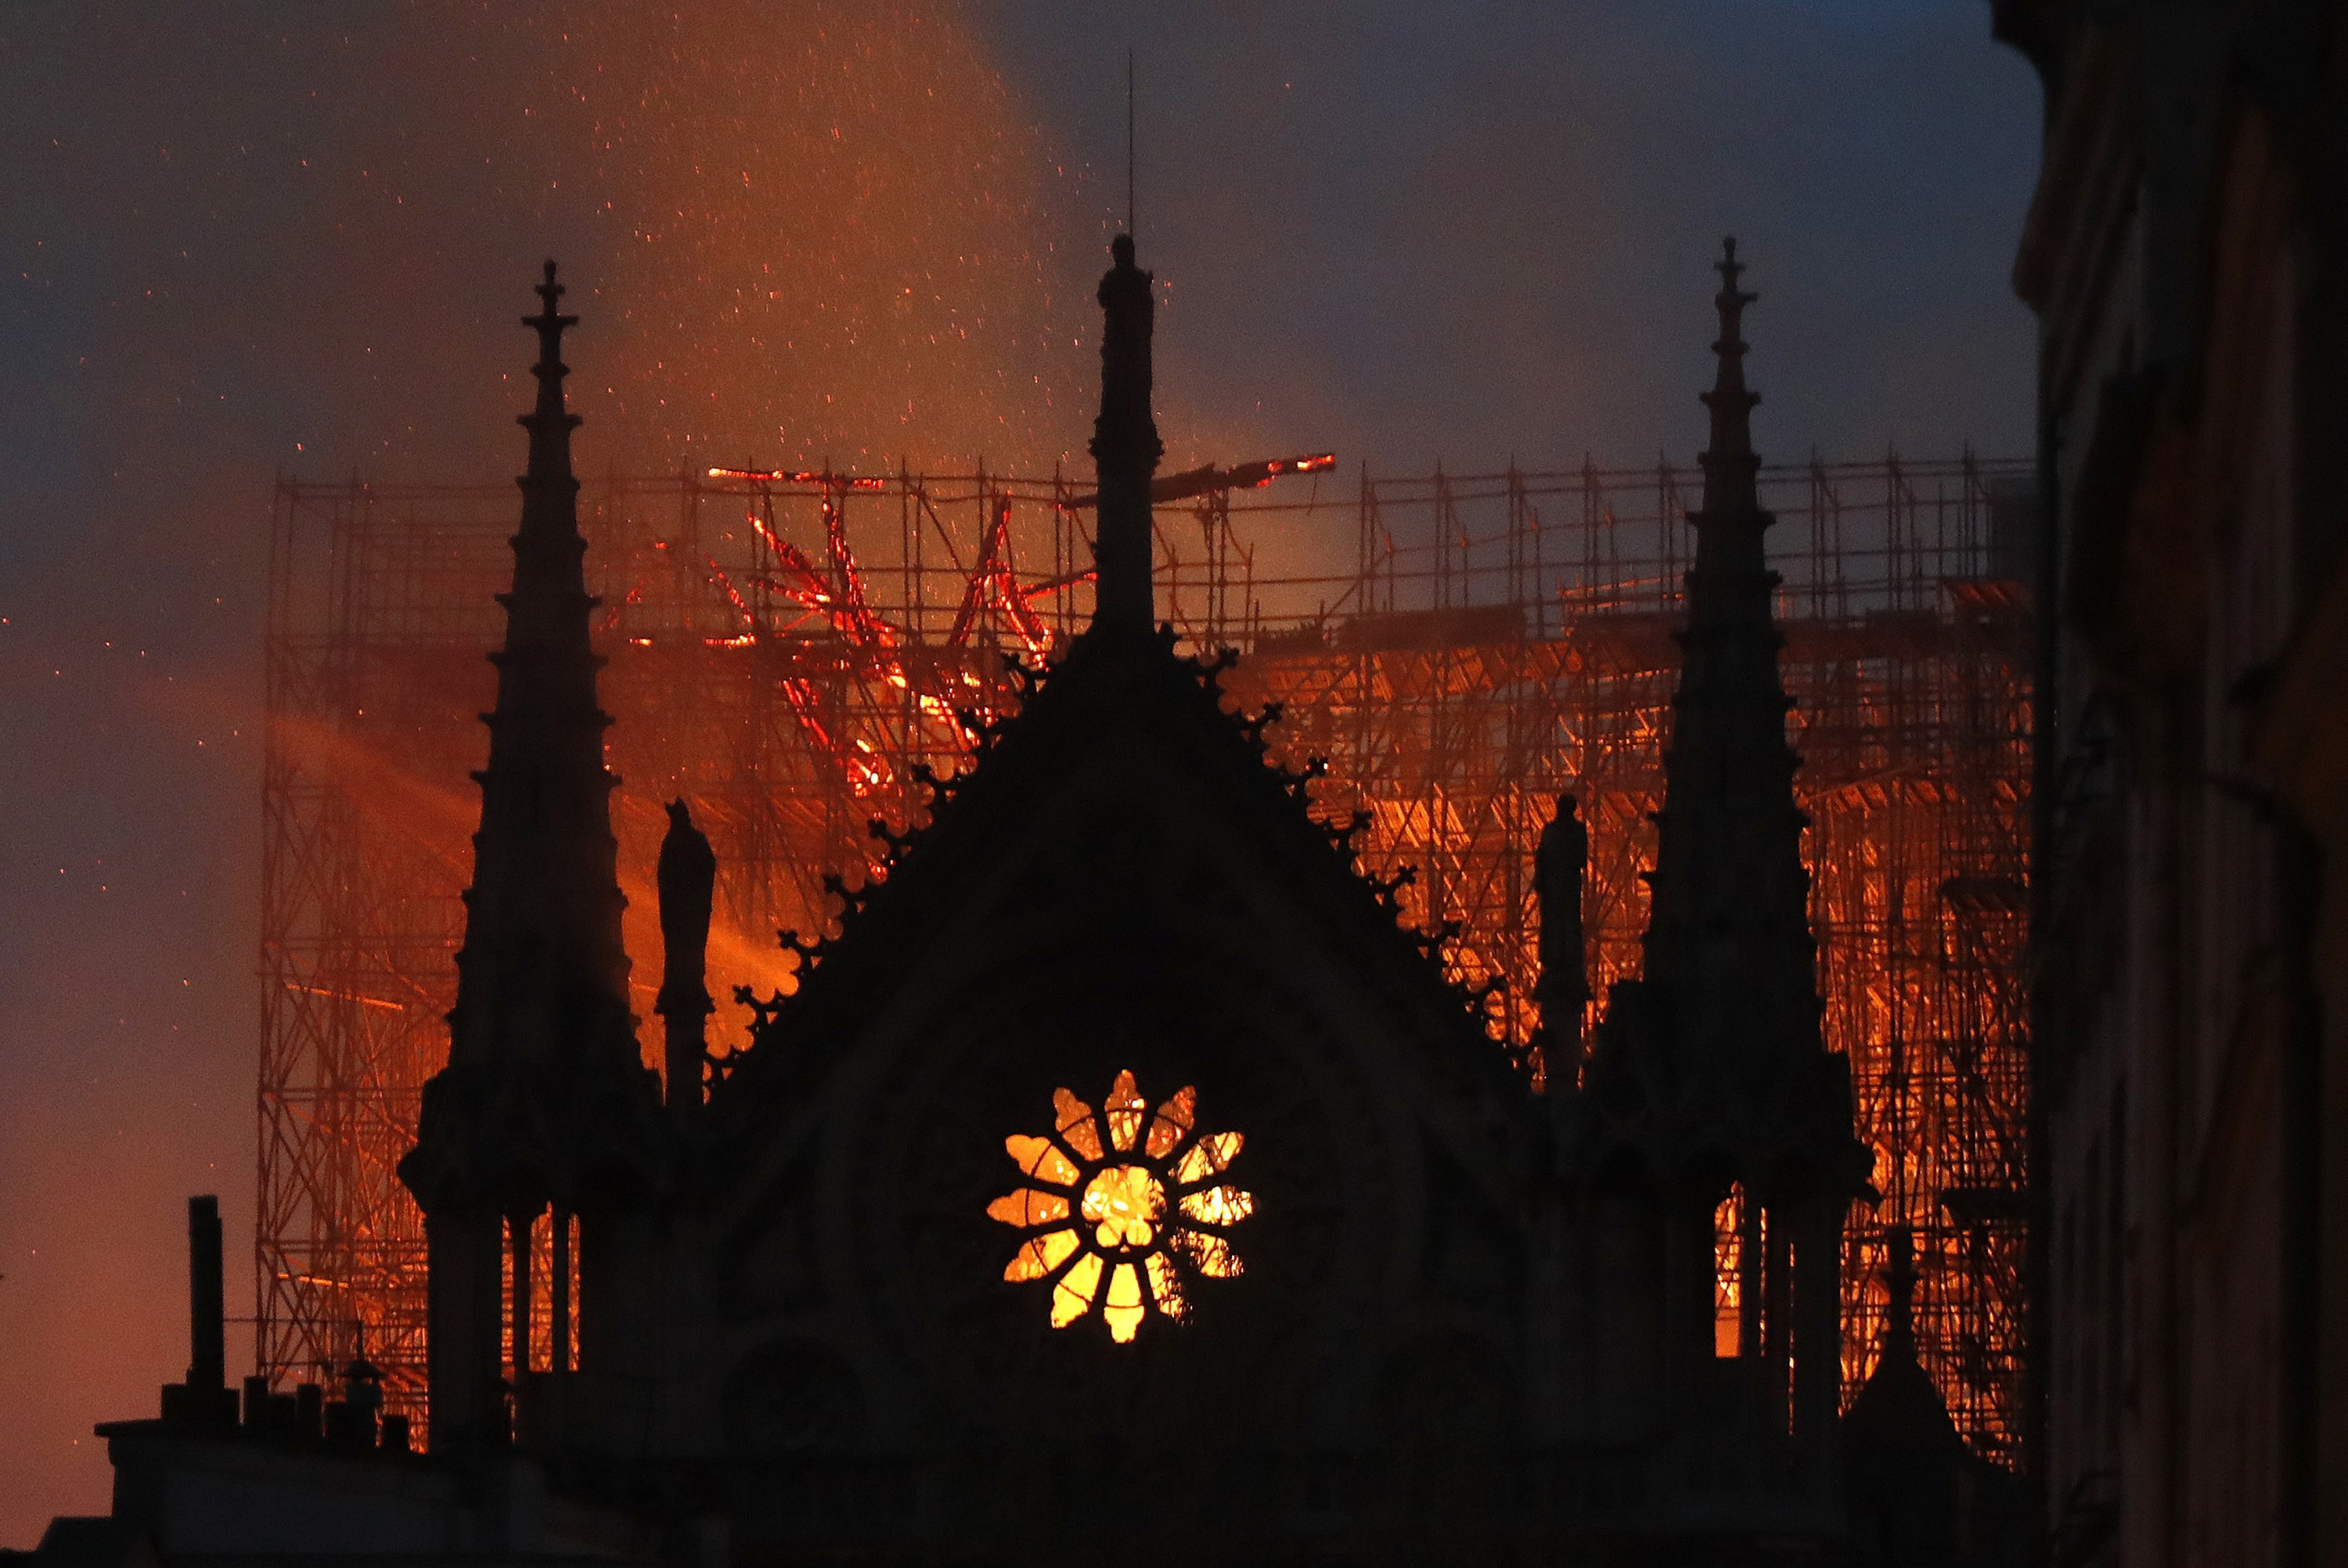 Flames and smoke rise from the Notre Dame cathedral as it burns in Paris, France, April 15, 2019. (AP Photo)